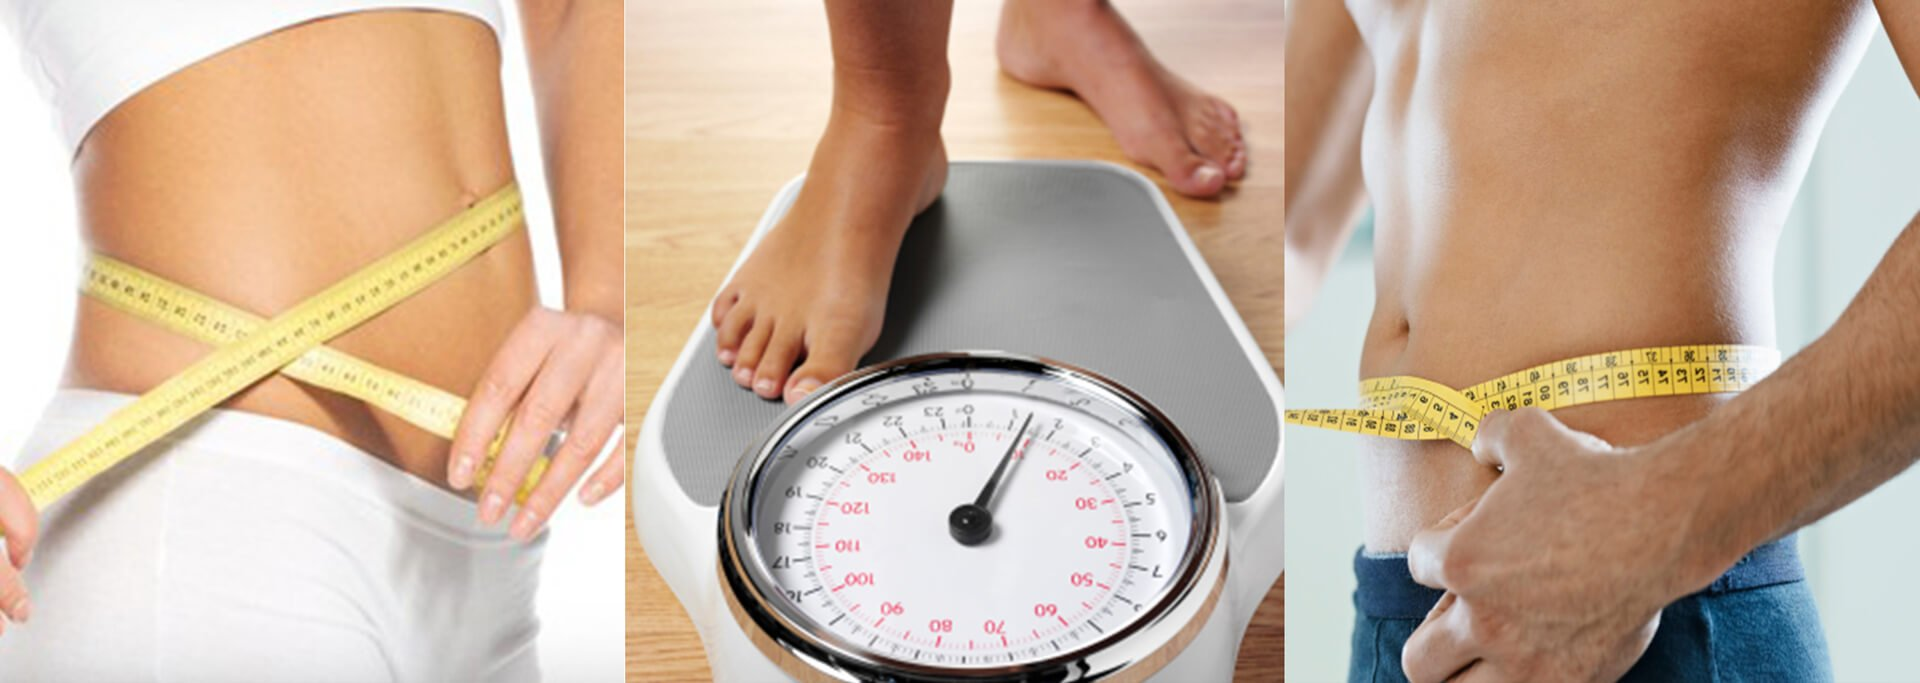 Miami Medically Supervised Weight Loss Program